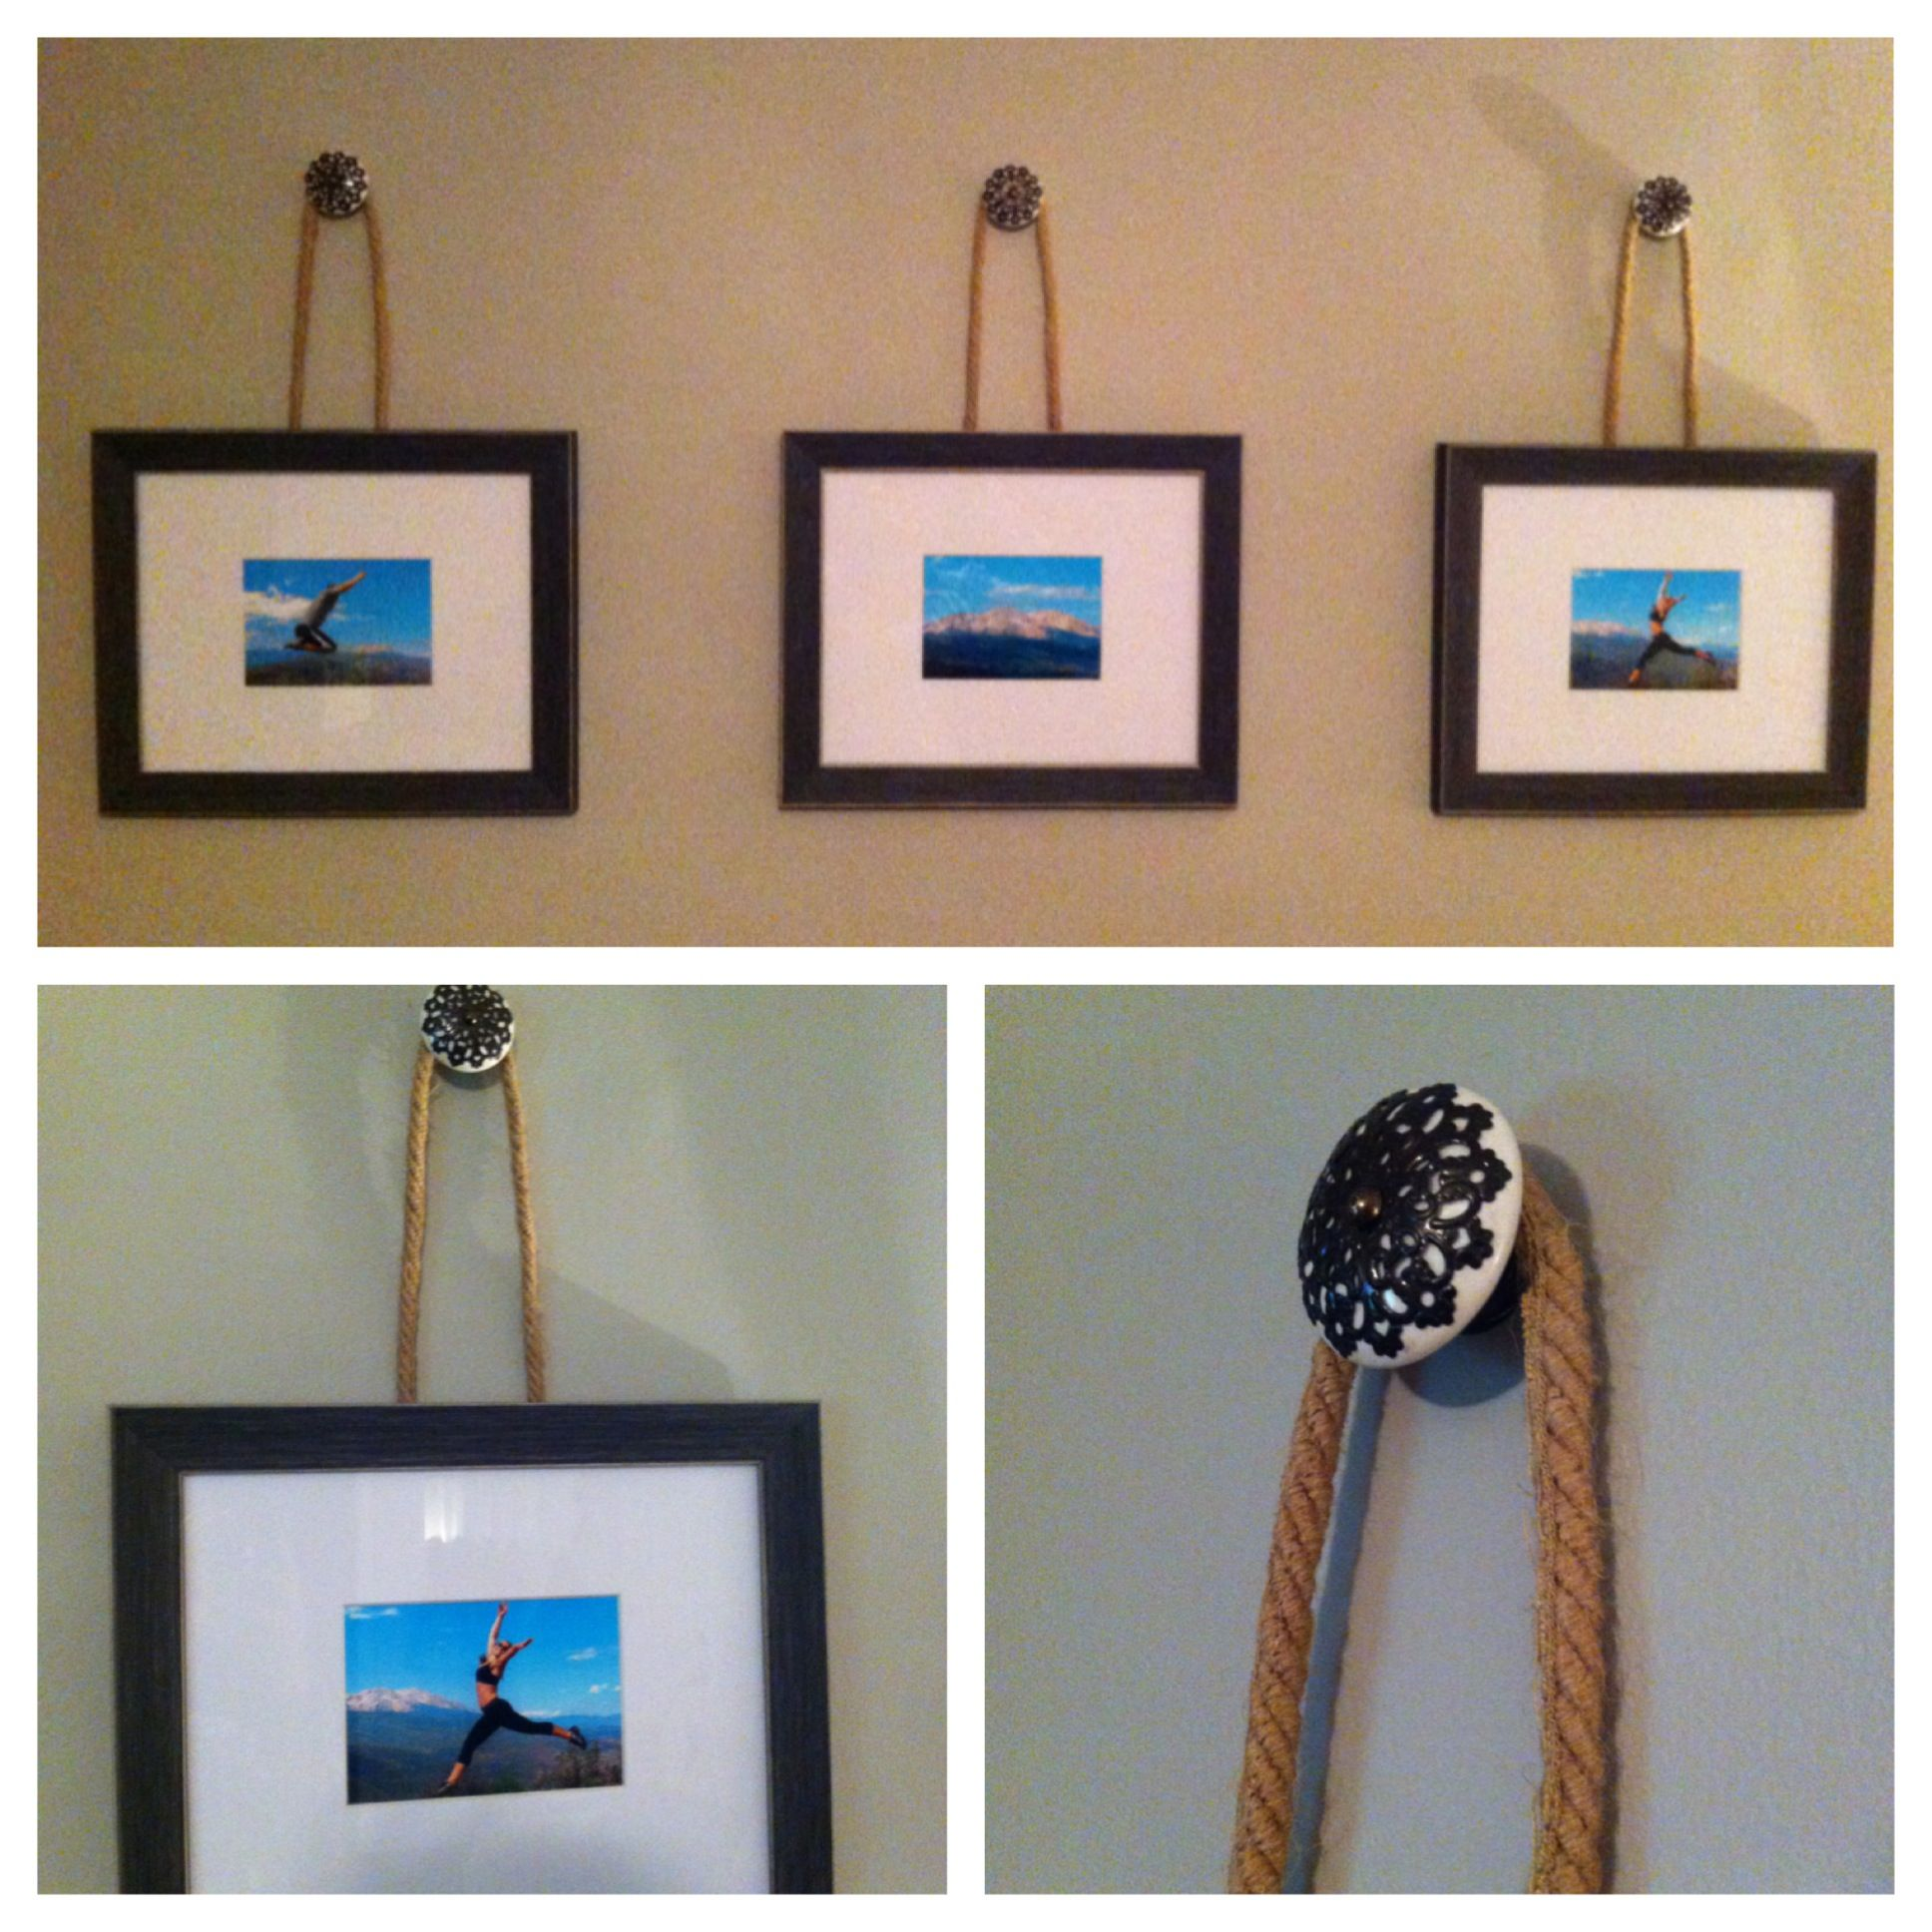 Frames on decorative knobs with rope (my DIY Pottery Barn project)